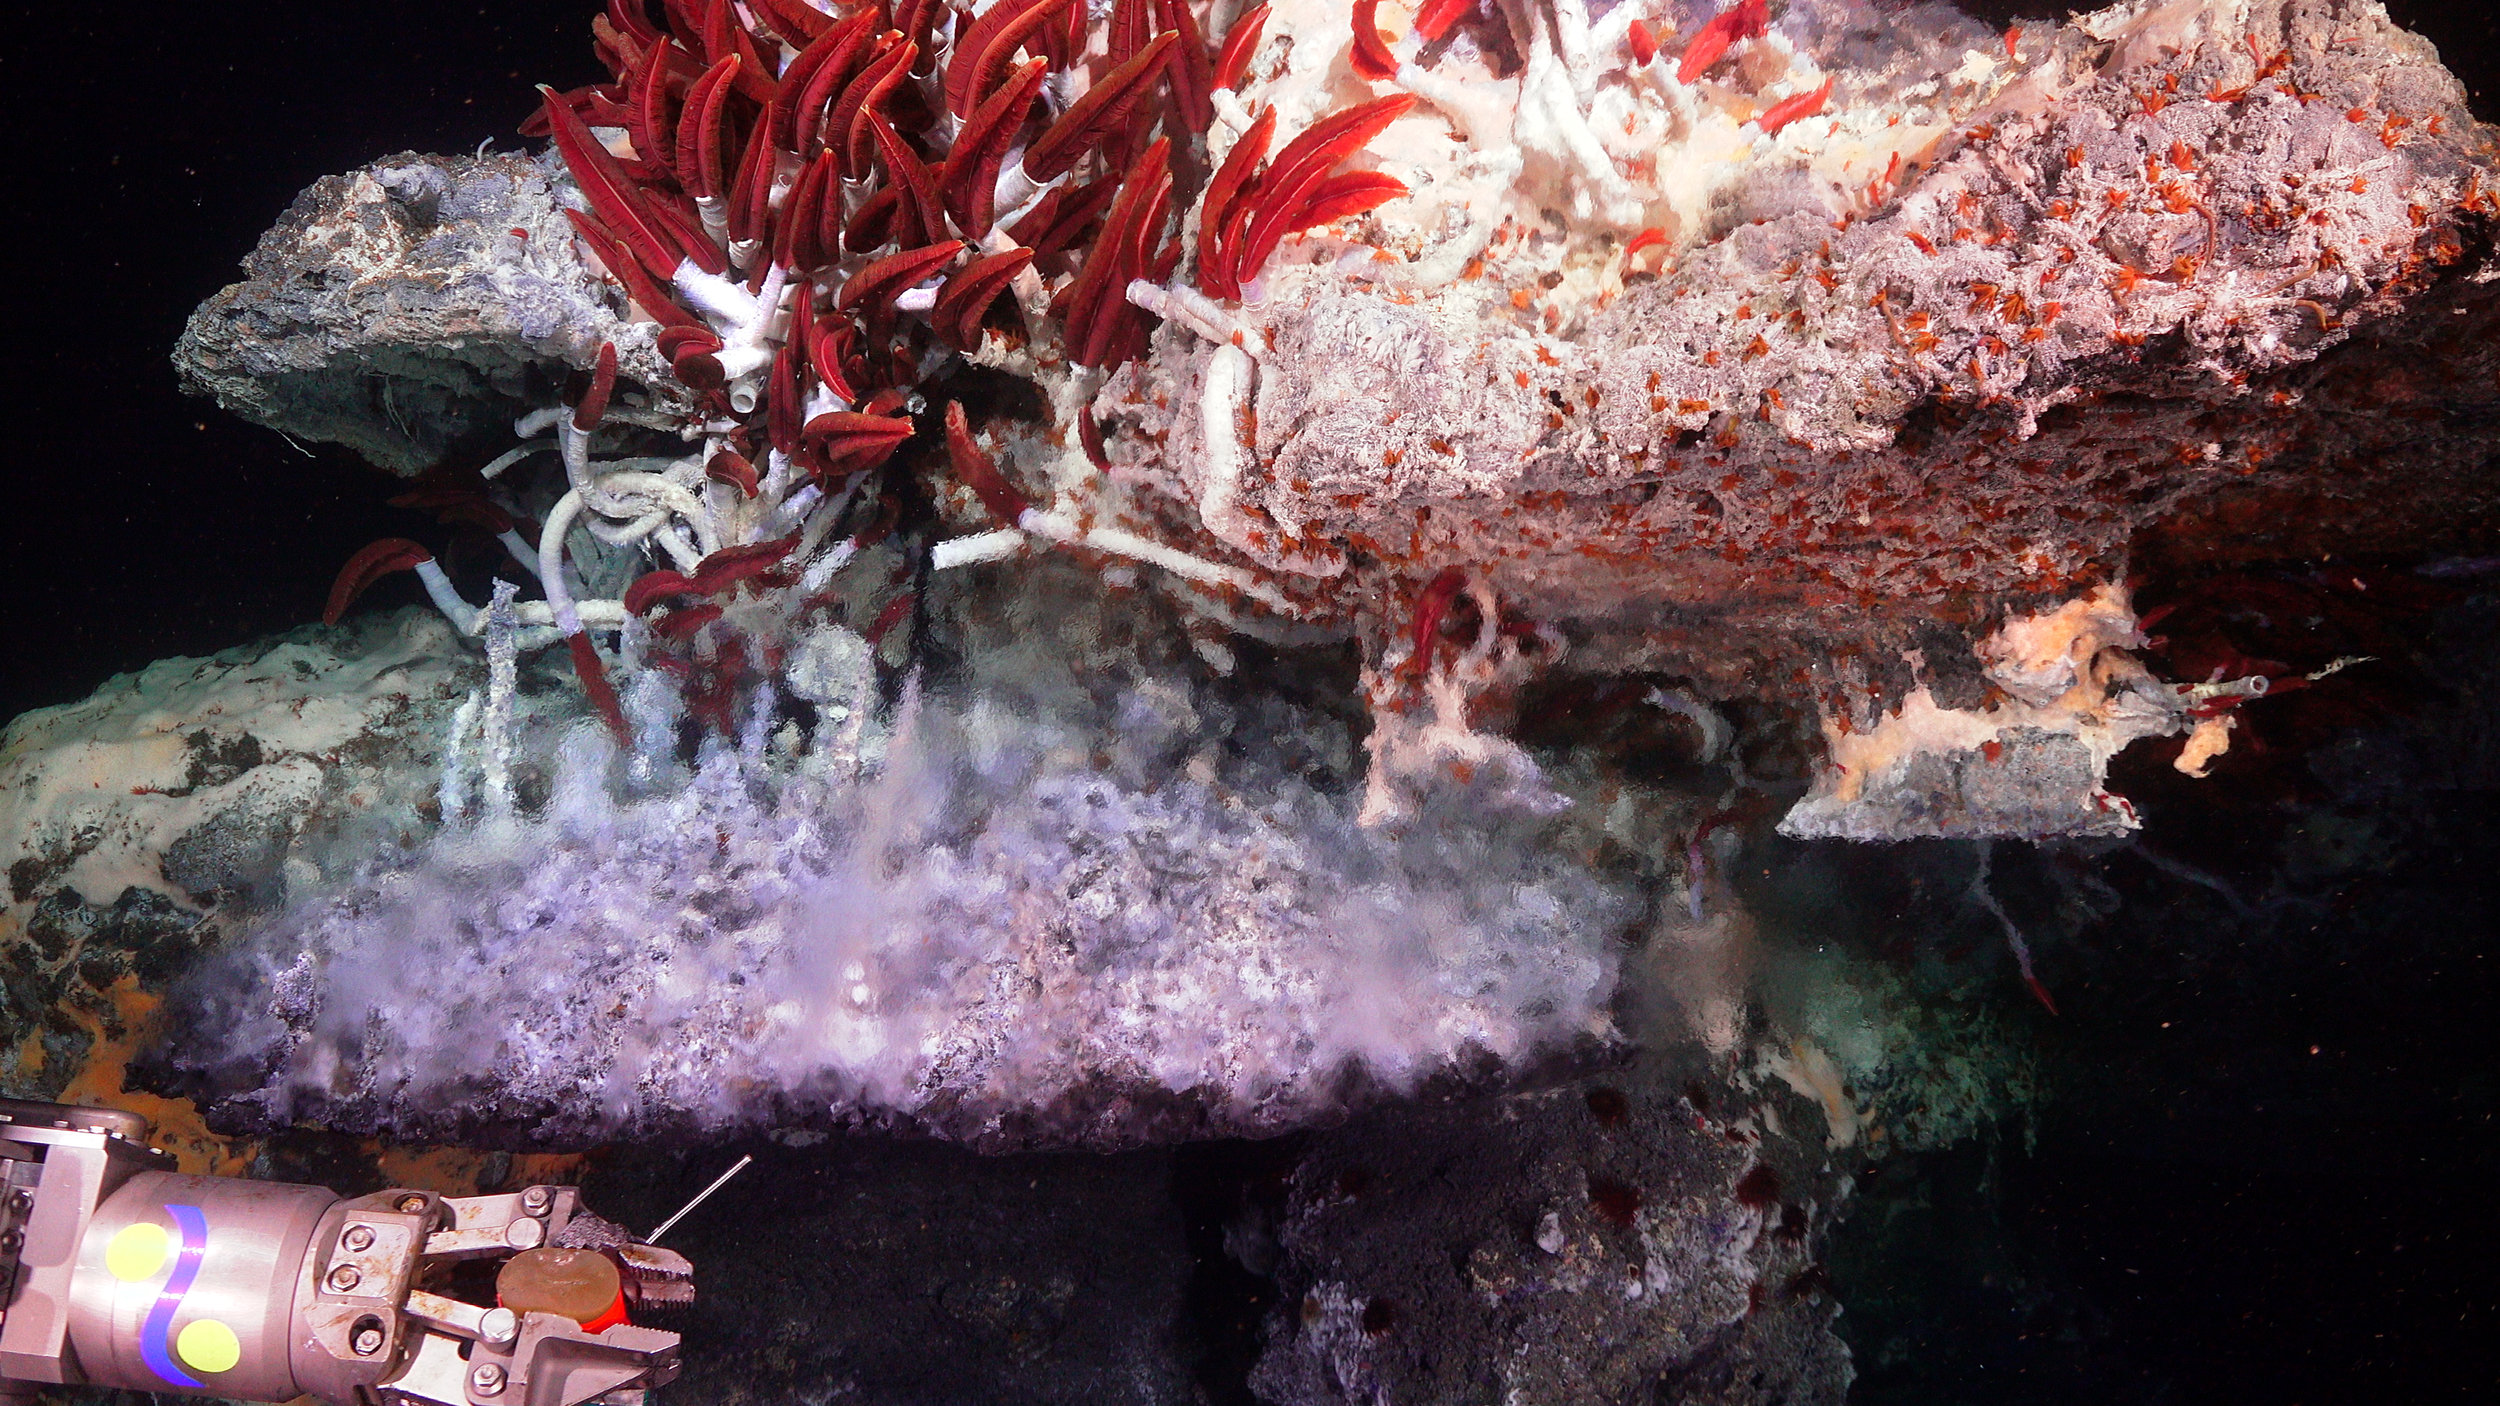 Hydrothermal vent structure in the Gulf of California.  (Image courtesy of Schmidt Ocean Institute)